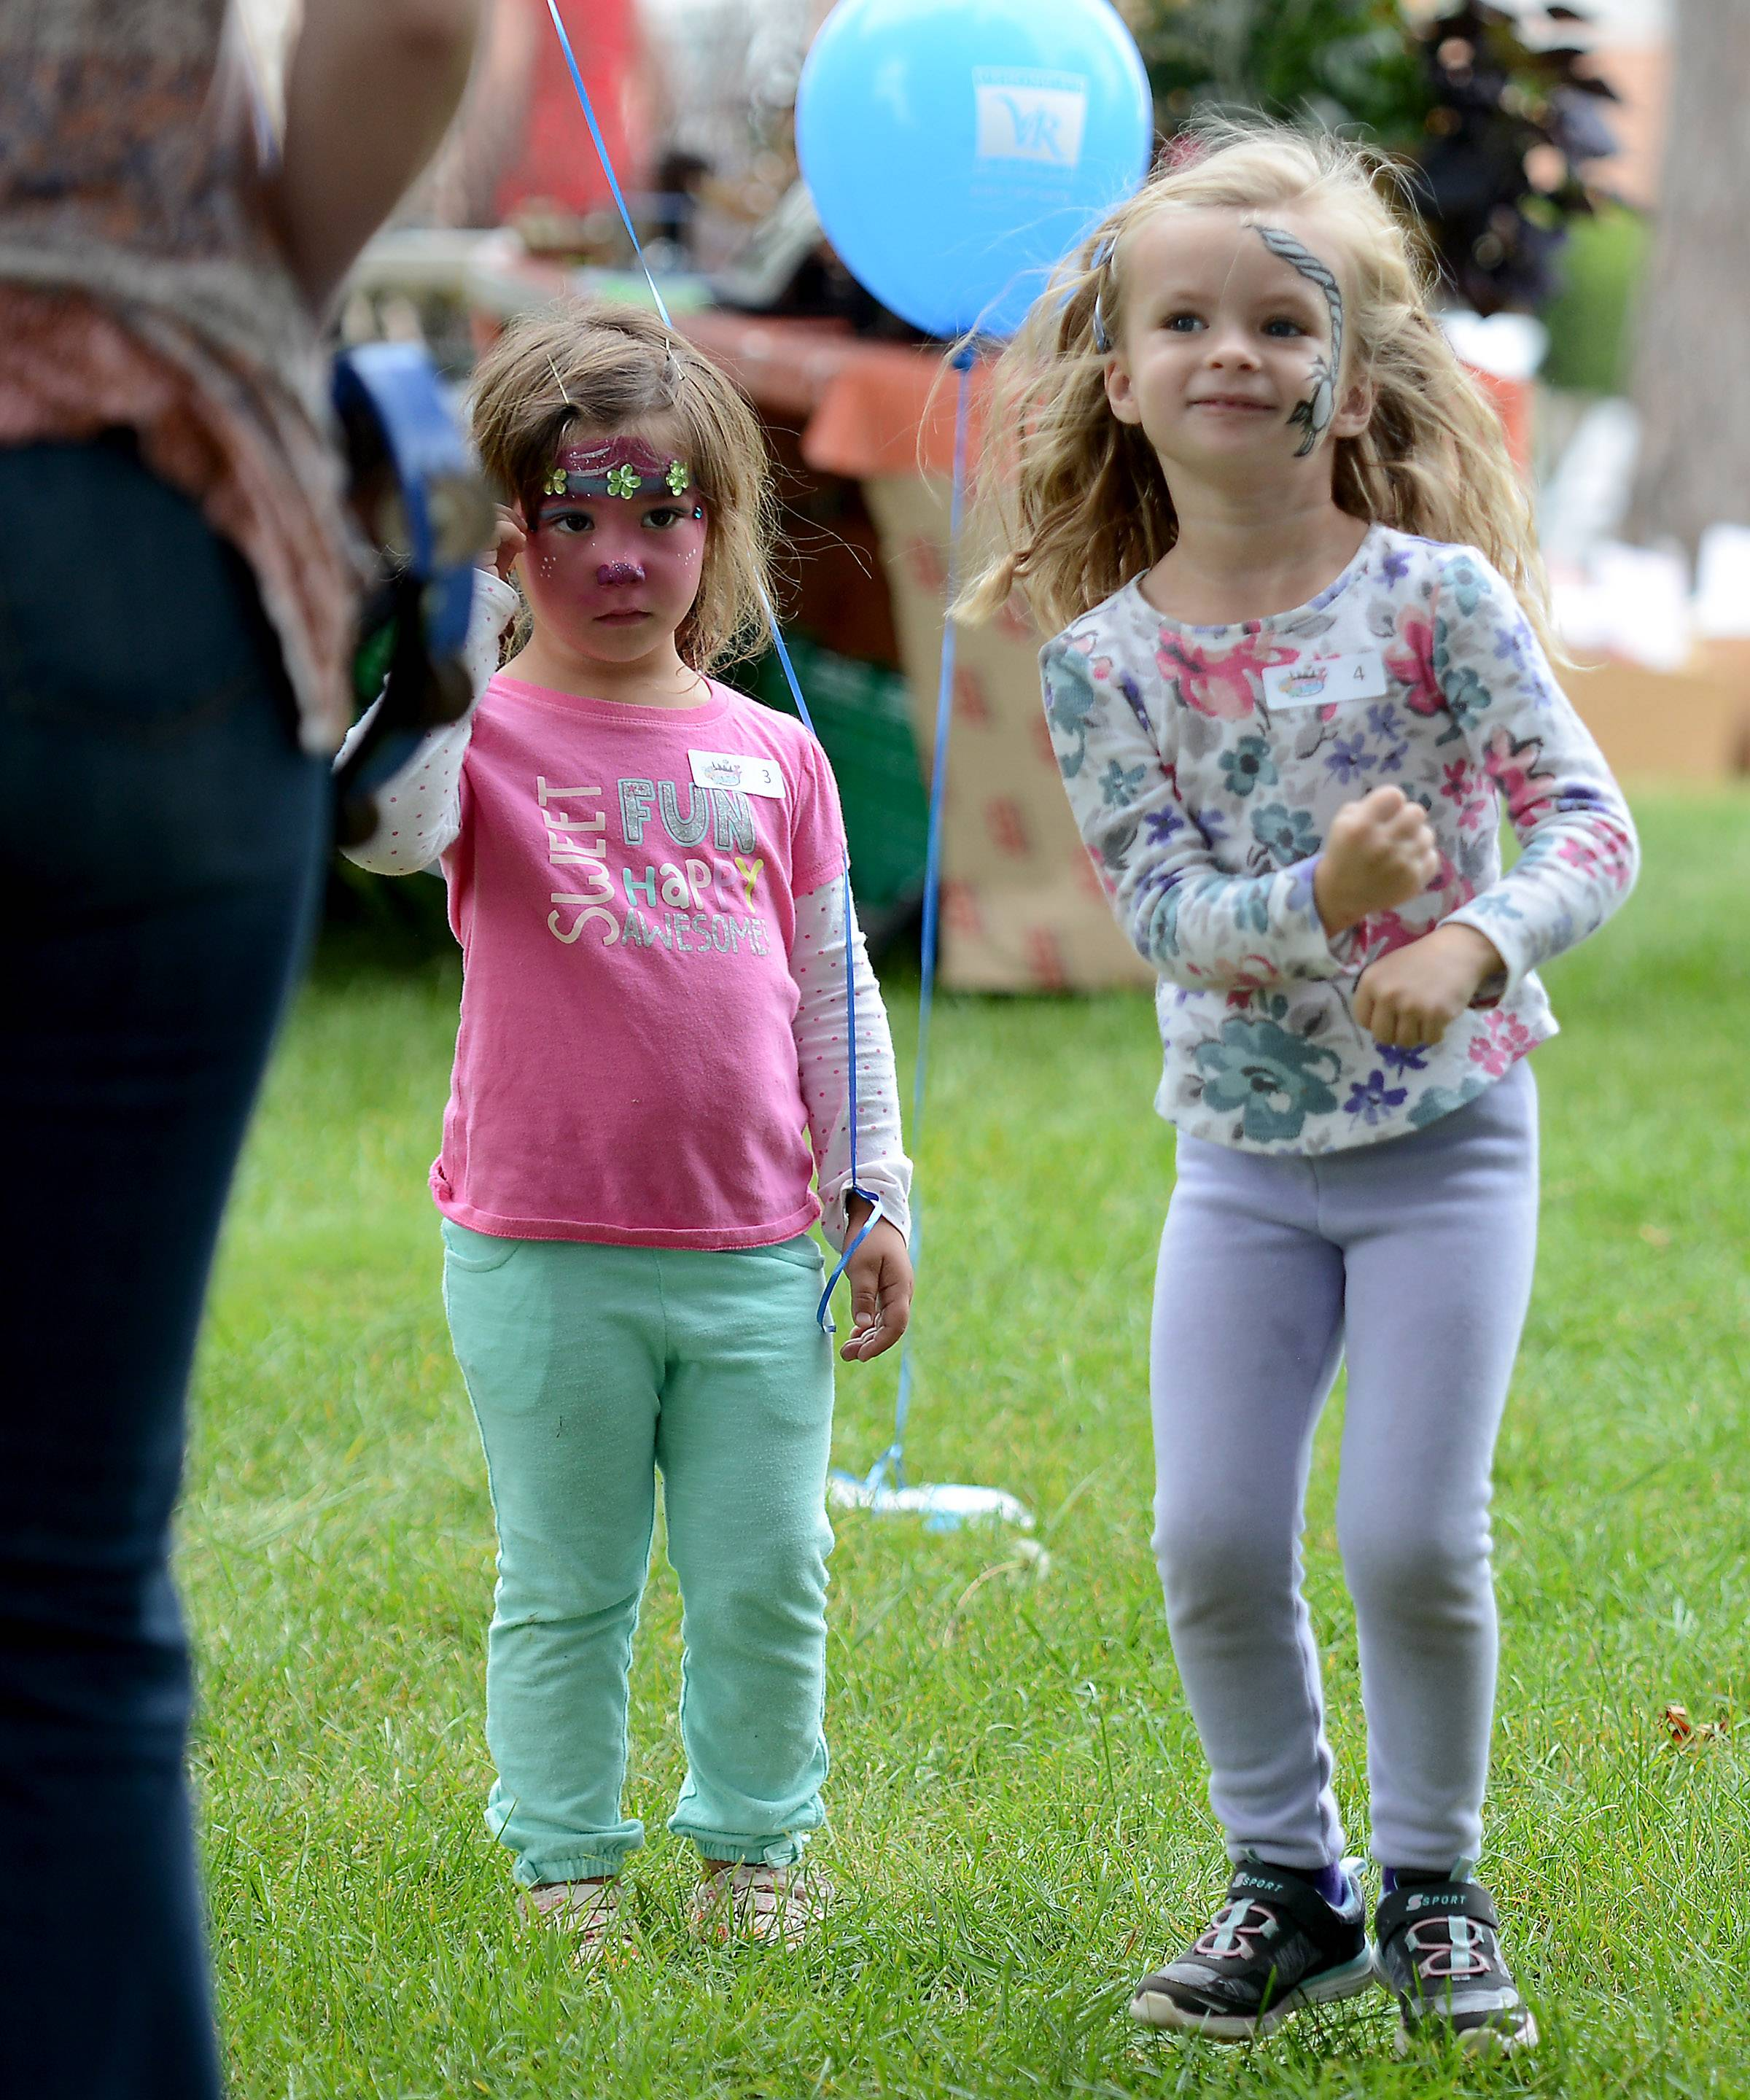 Lilly Gemmell, right, 4, of St. Charles moves to the beat of The Thompson Duo while her friend Olivia Dazzo, 3, of Geneva watches her moves during day one of Festival of the Vine Friday in Geneva.